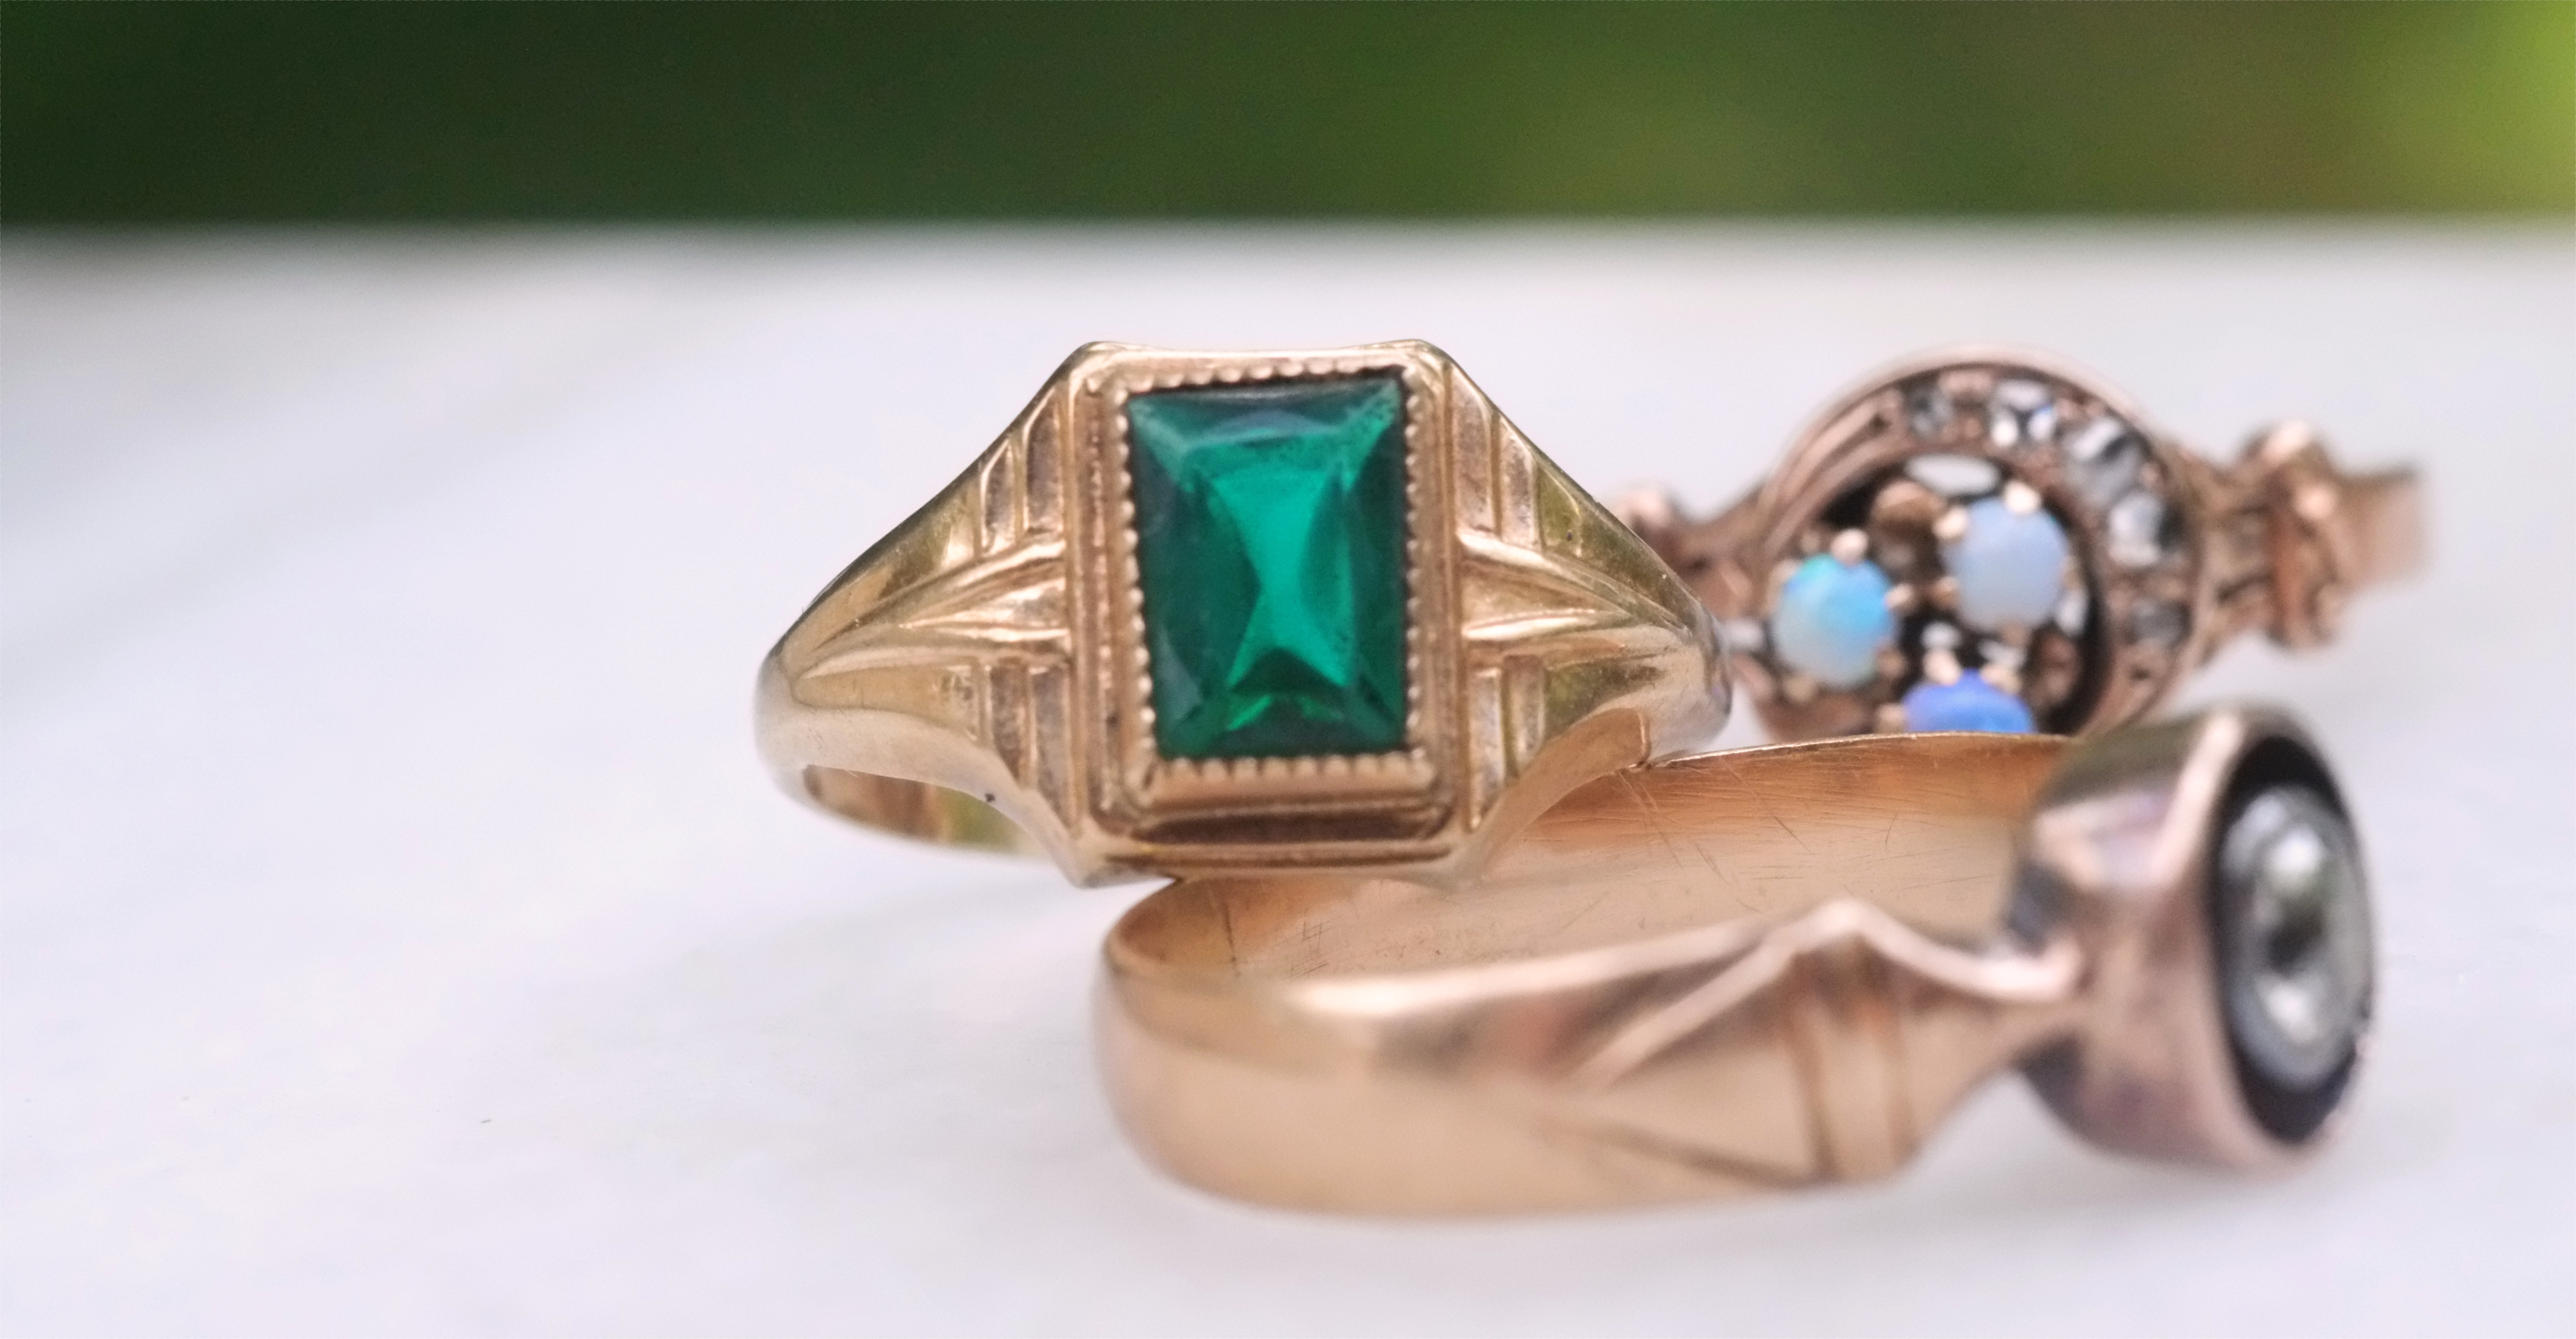 Antique emerald and yellow gold ring